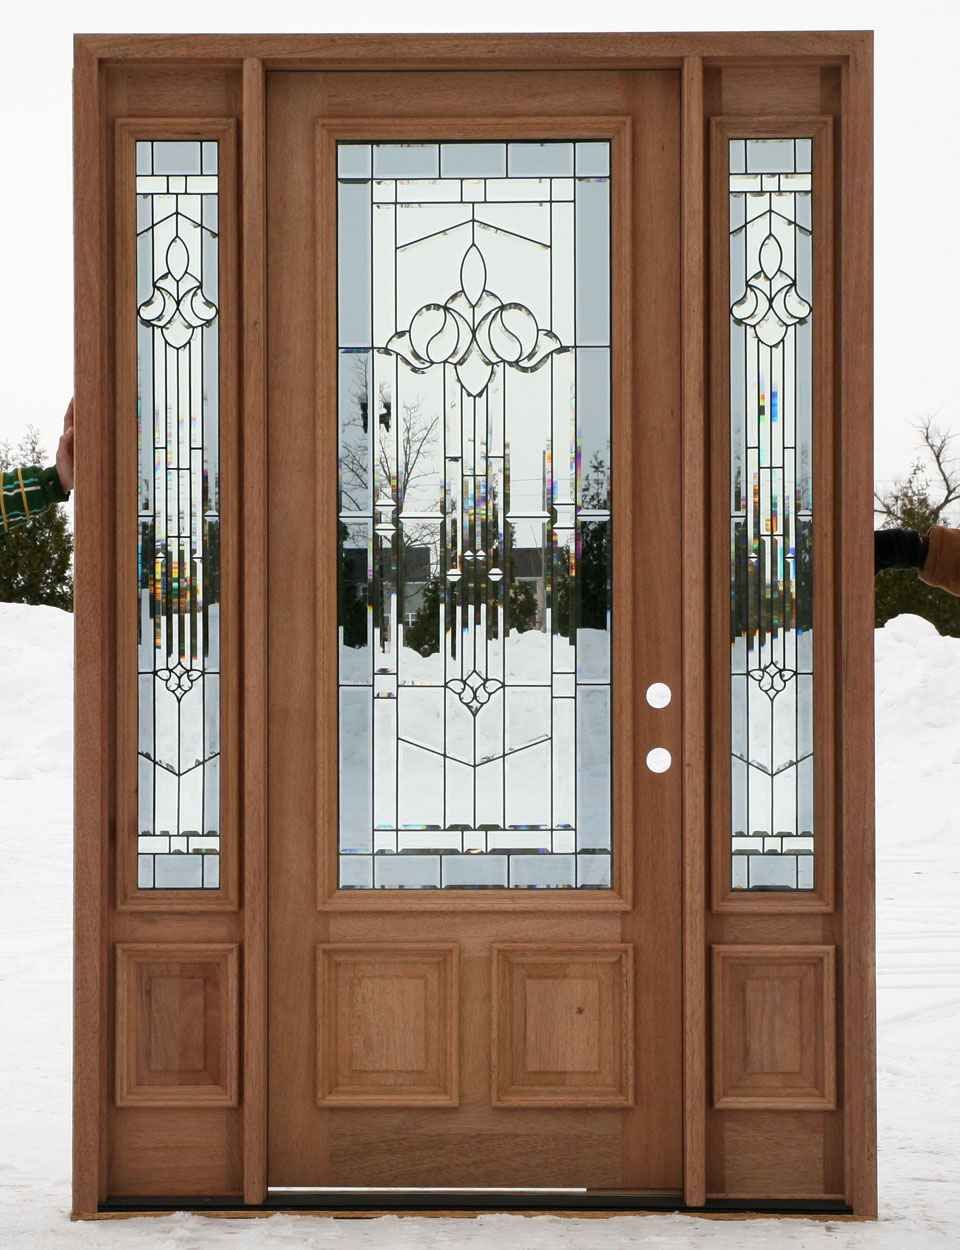 Discount fiberglass exterior doors wooden entry doors designer elegant cheap entry doors for home